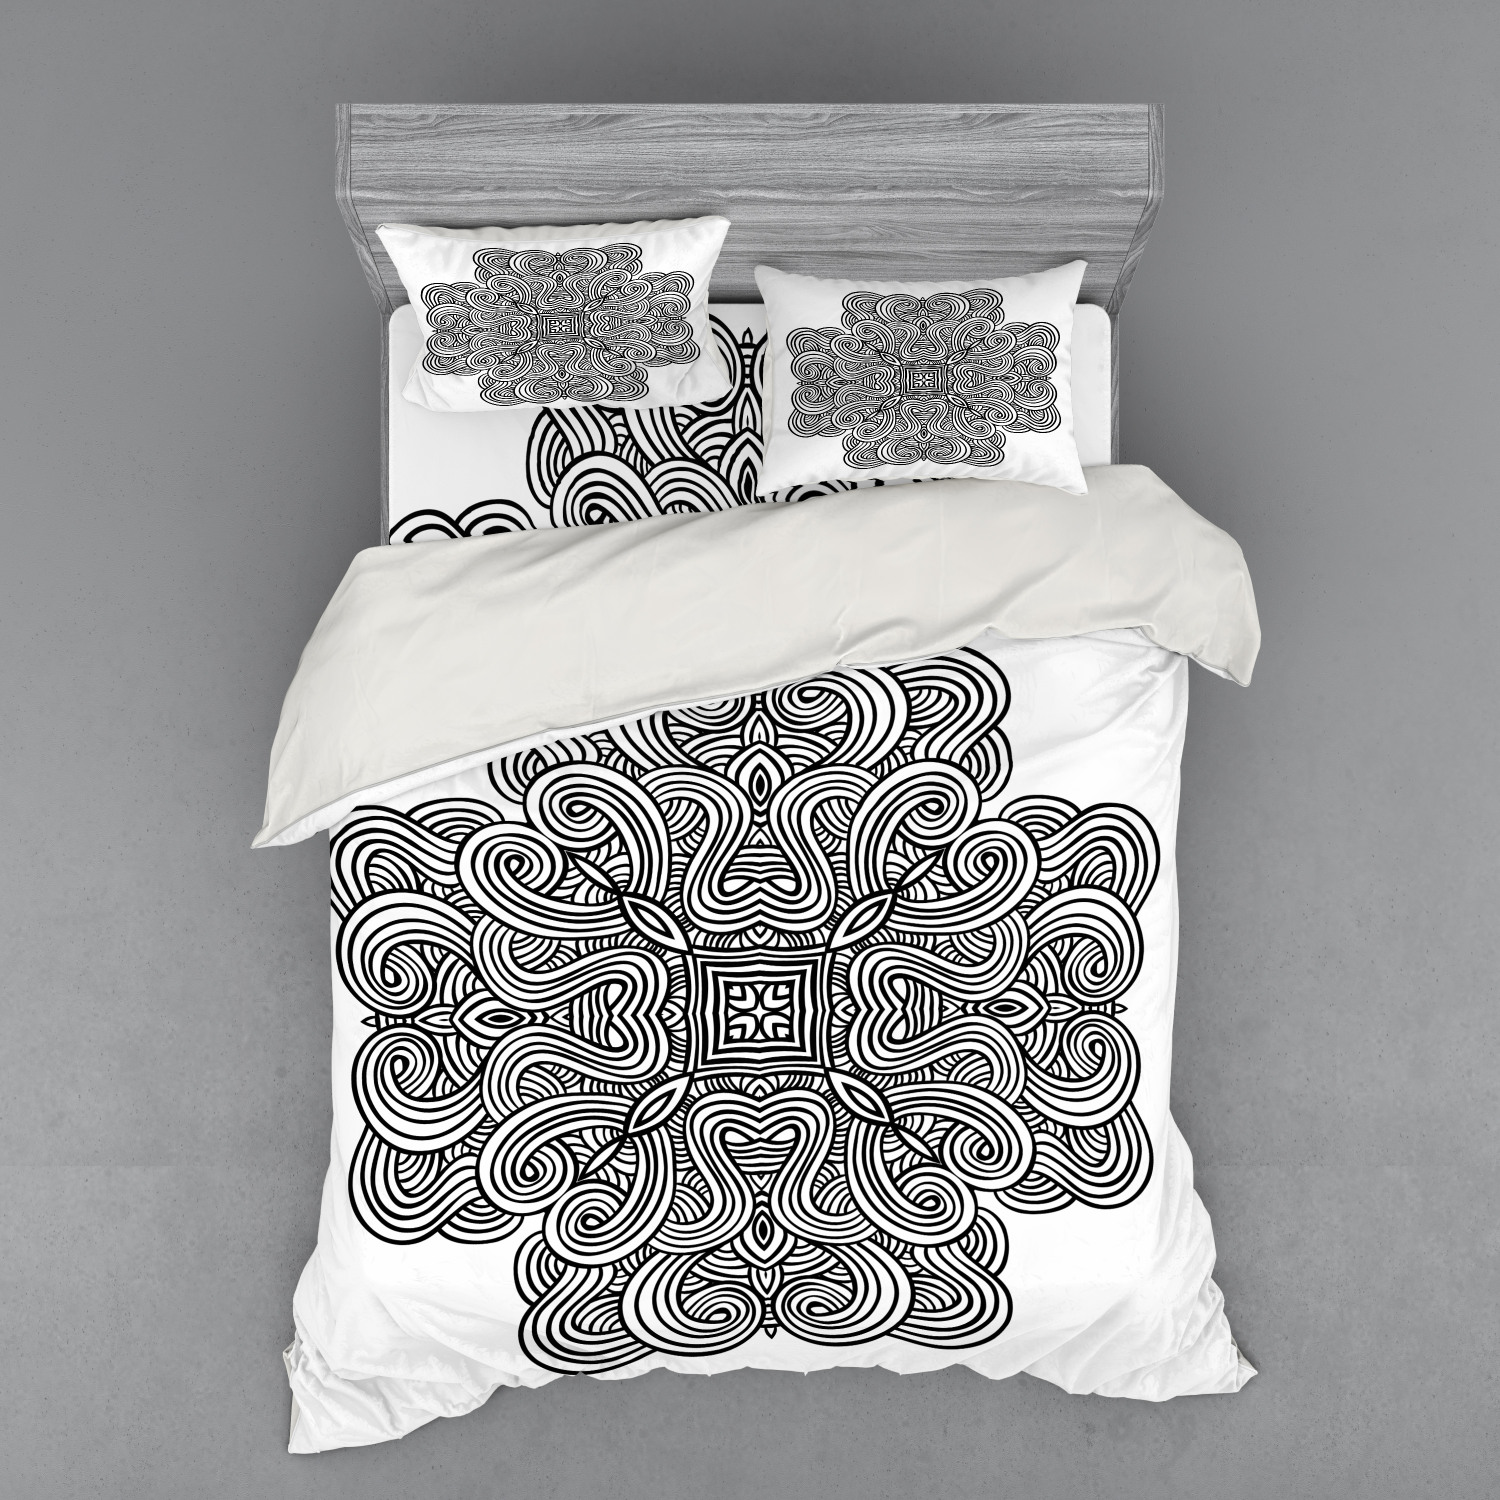 thumbnail 50 - Ambesonne Black White Art Bedding Set Duvet Cover Sham Fitted Sheet in 3 Sizes